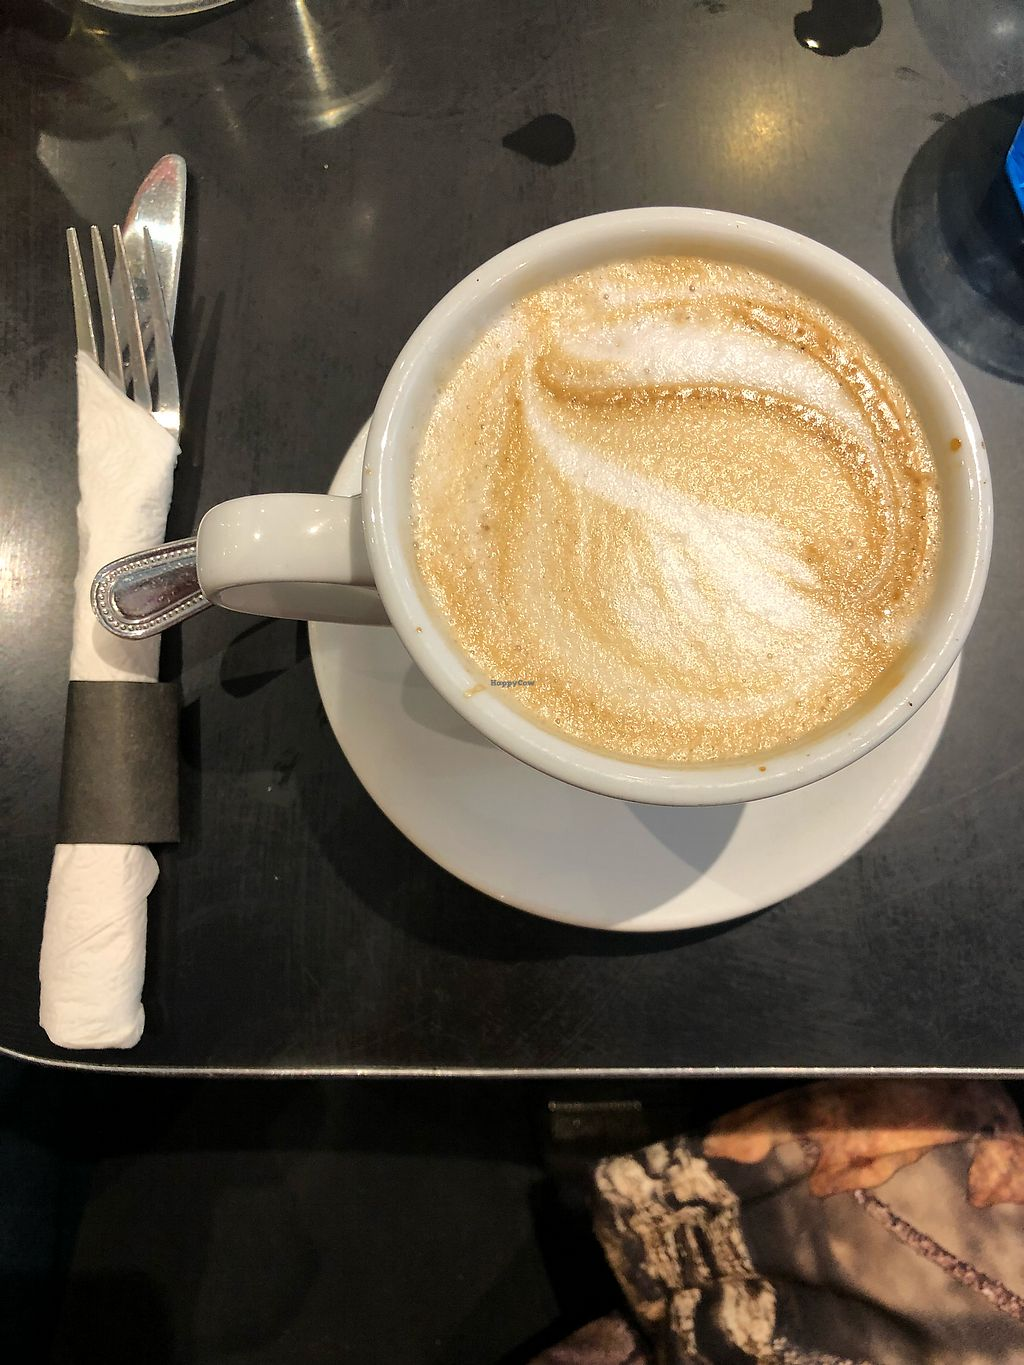 "Photo of Champs Diner  by <a href=""/members/profile/bridgetlaurenn"">bridgetlaurenn</a> <br/>Vanilla Latte  <br/> March 17, 2018  - <a href='/contact/abuse/image/24286/371694'>Report</a>"